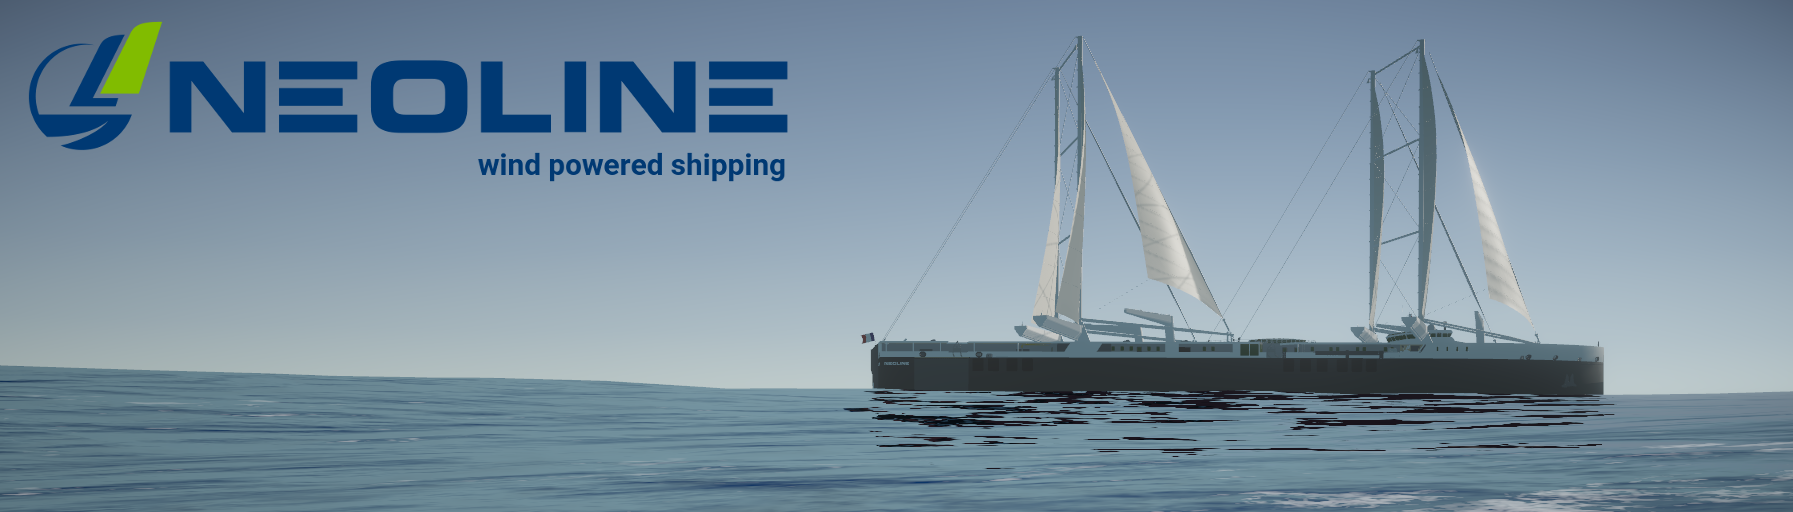 NEOLINE wind powered shipping bannière